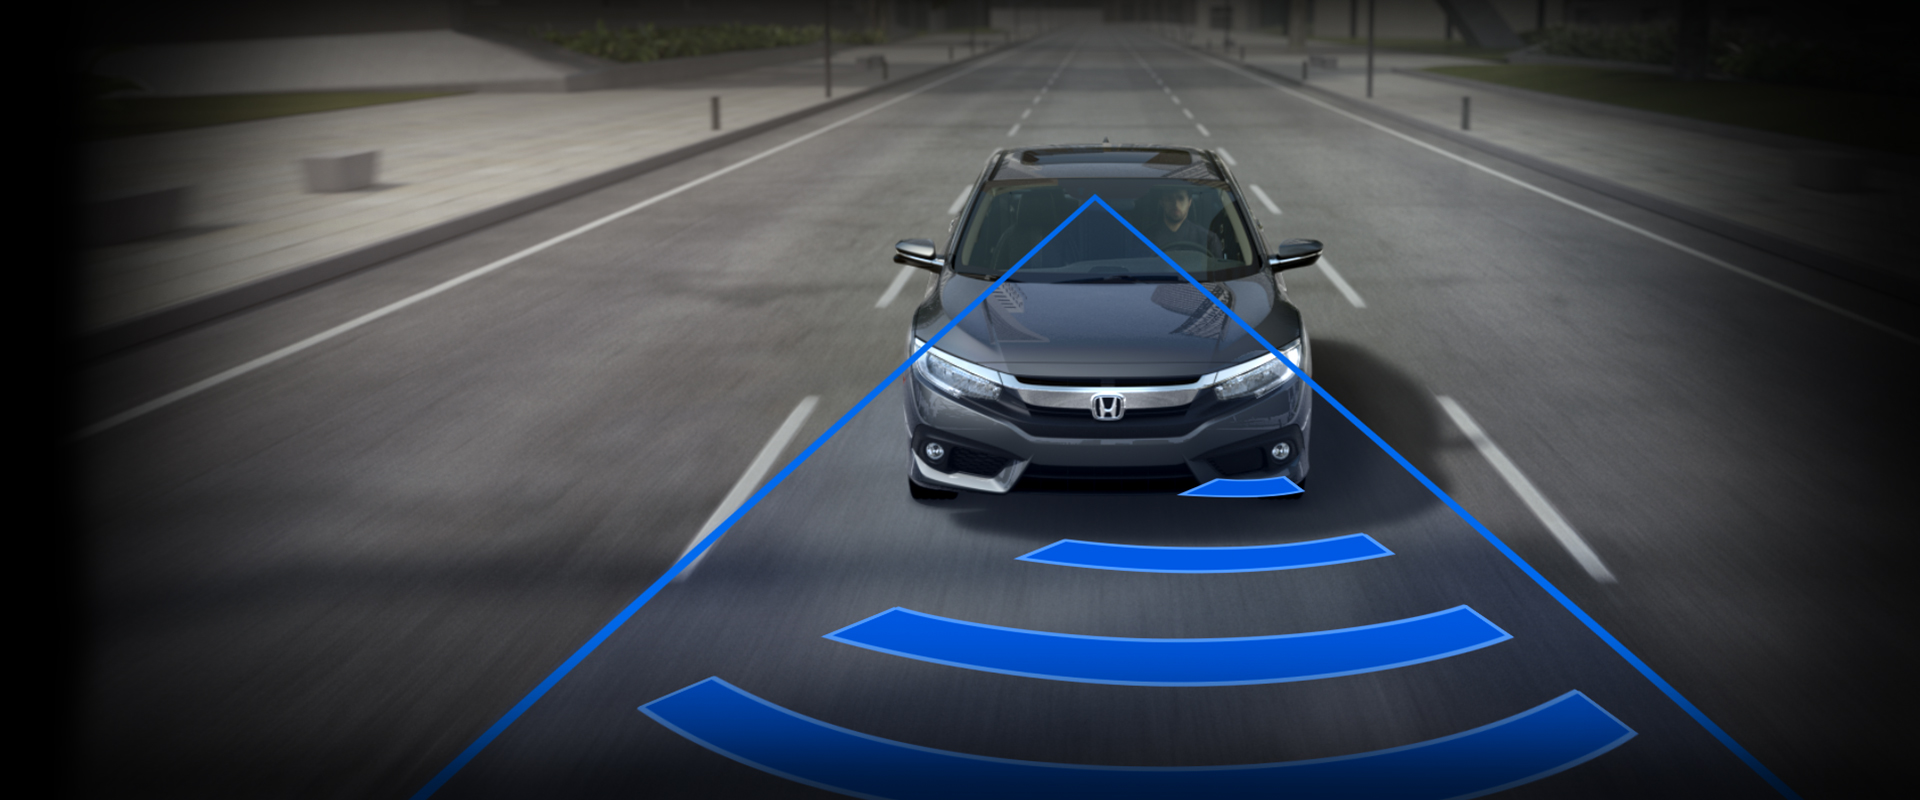 Honda Civic Collision Mitigation Braking System